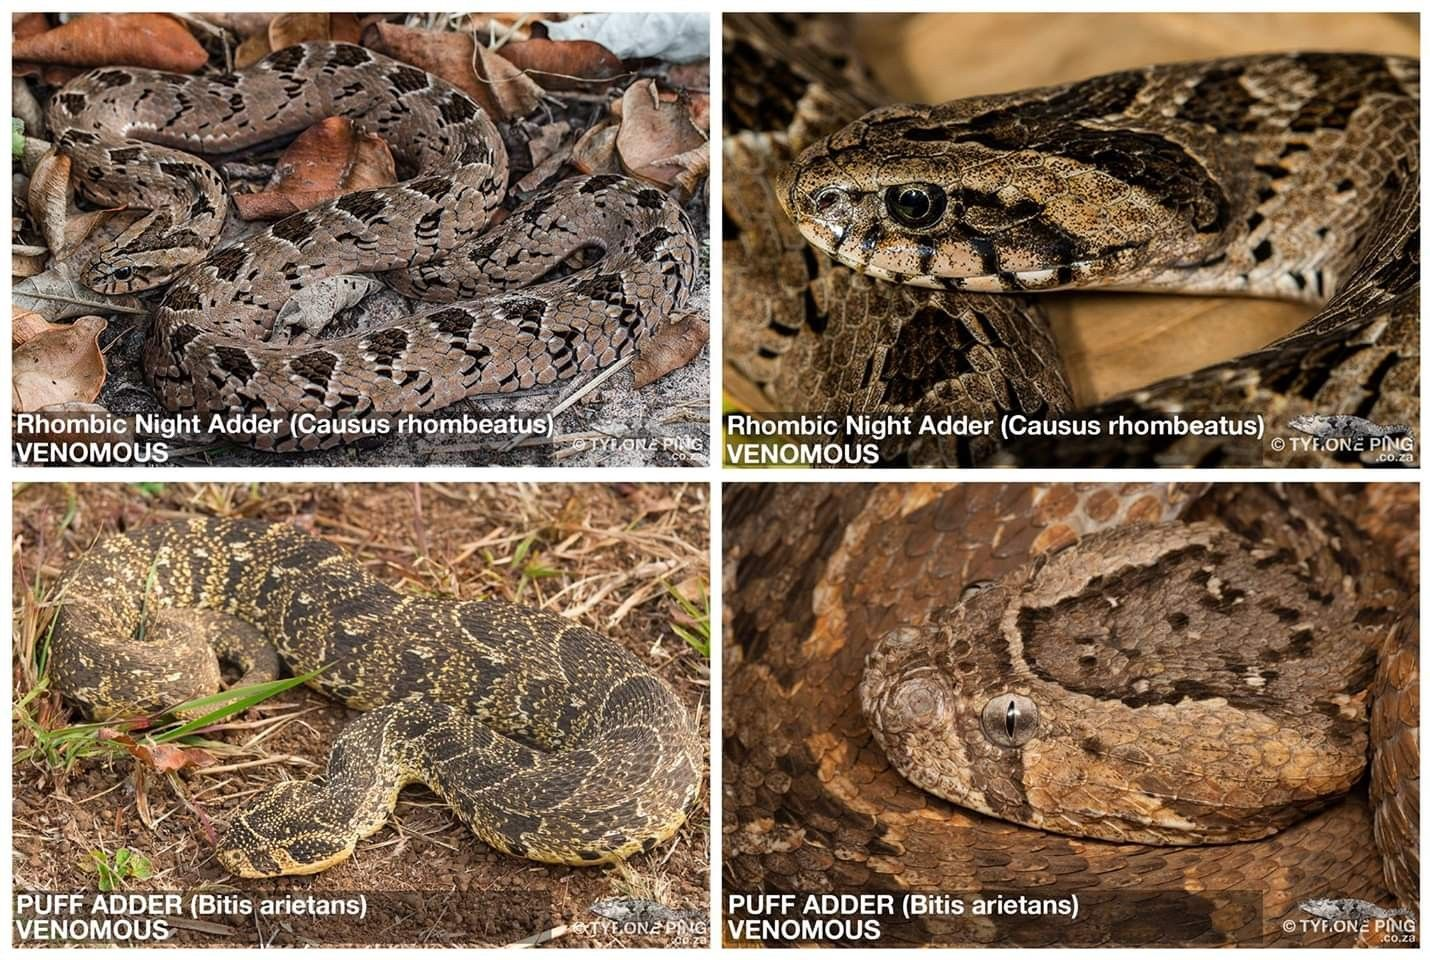 Rhombic Night Adder Versus Puff Adder The Key Difference Between